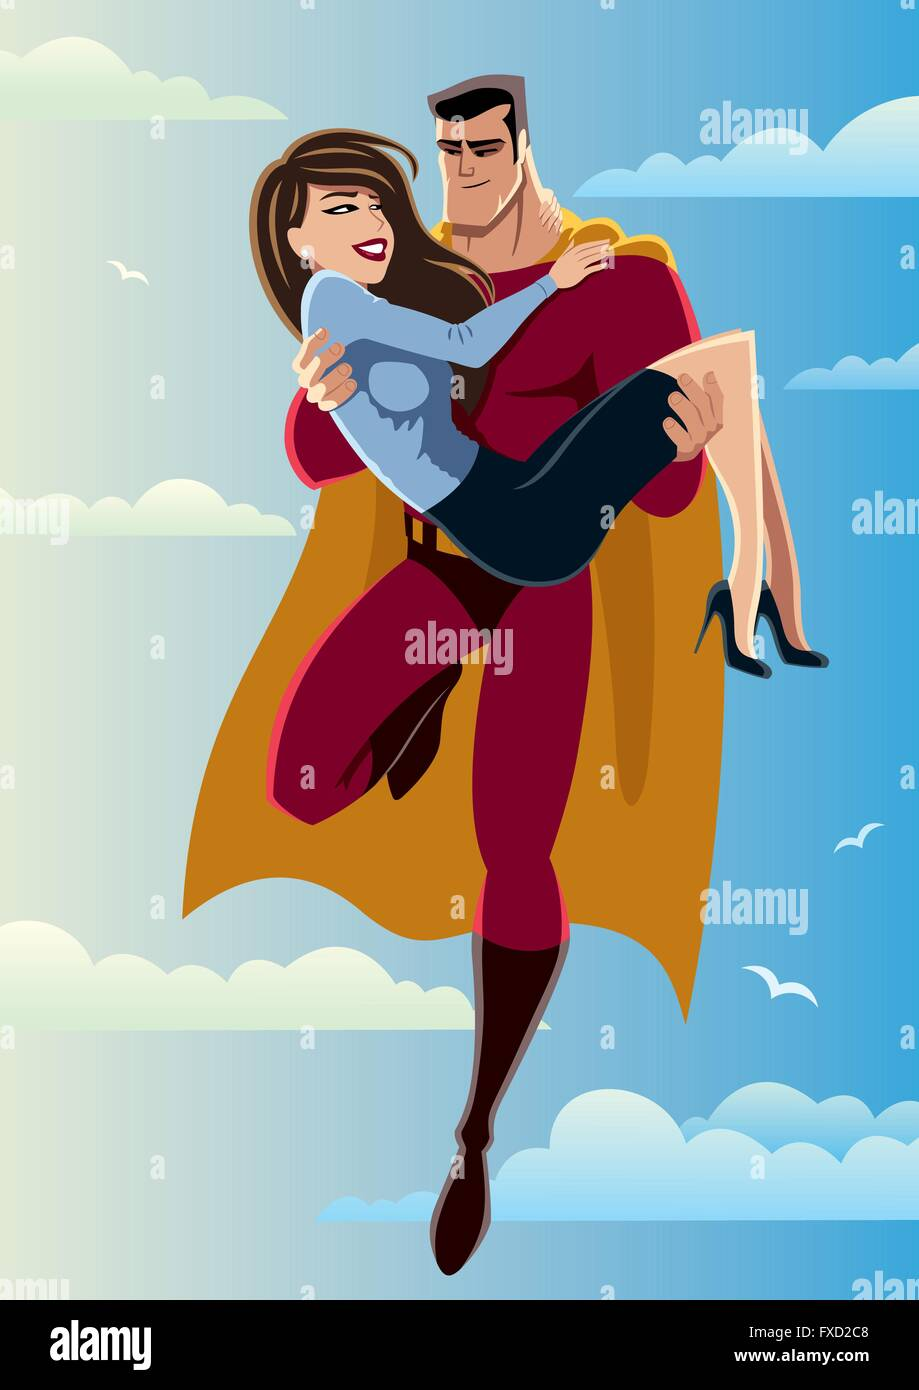 Illustration of flying superhero carrying woman in his arms. No transparency used. Basic linear gradients used for the sky and c Stock Vector